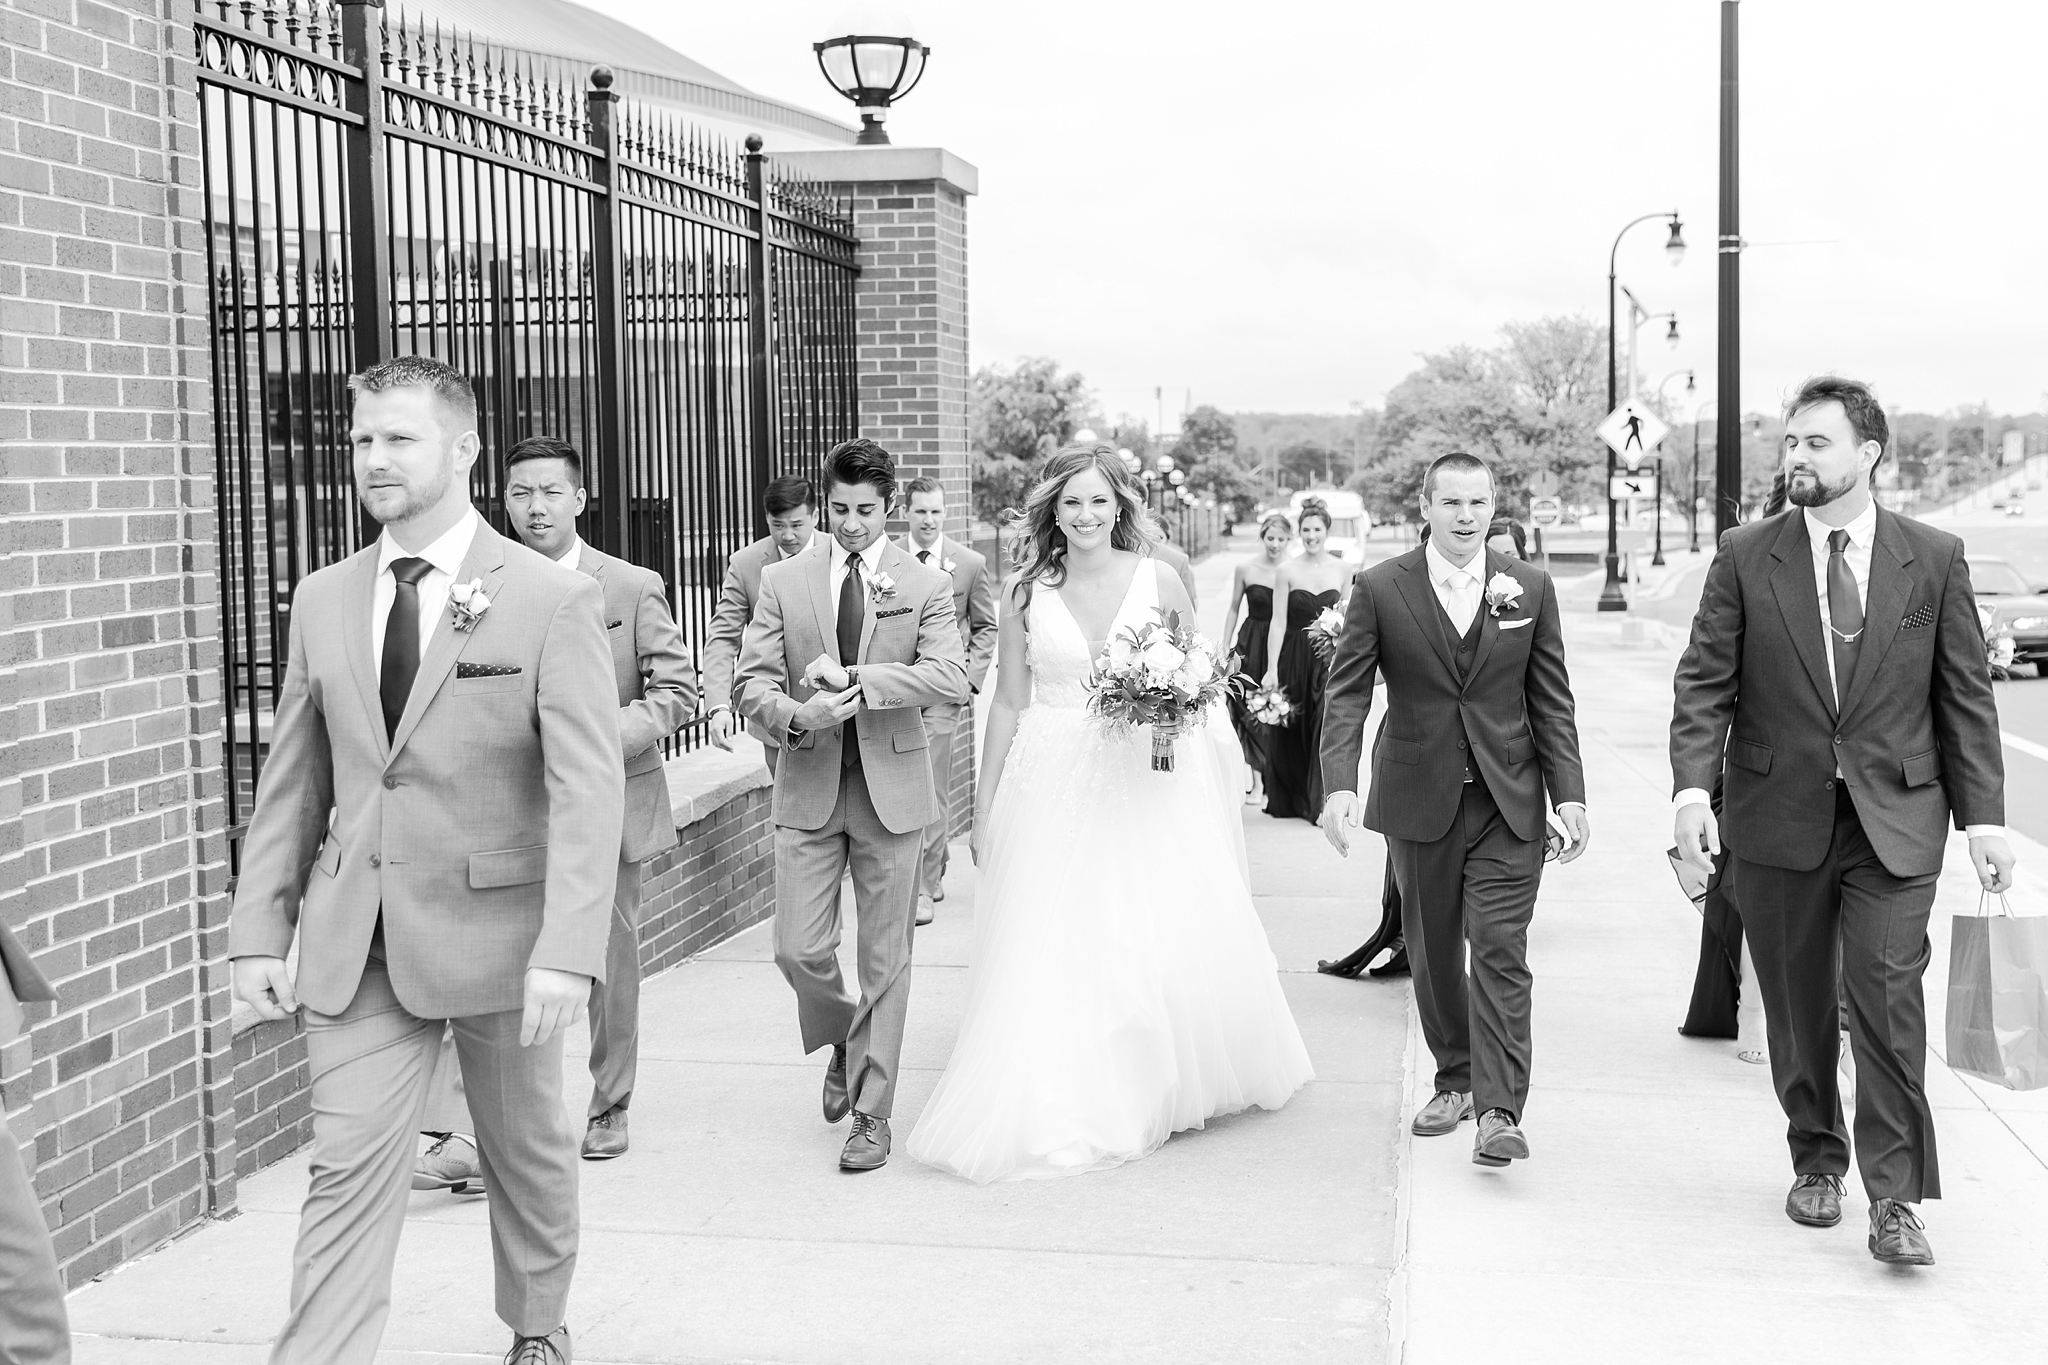 joyful-candid-laid-back-wedding-photos-in-ann-arbor-michigan-and-at-the-eagle-crest-golf-resort-by-courtney-carolyn-photography_0049.jpg